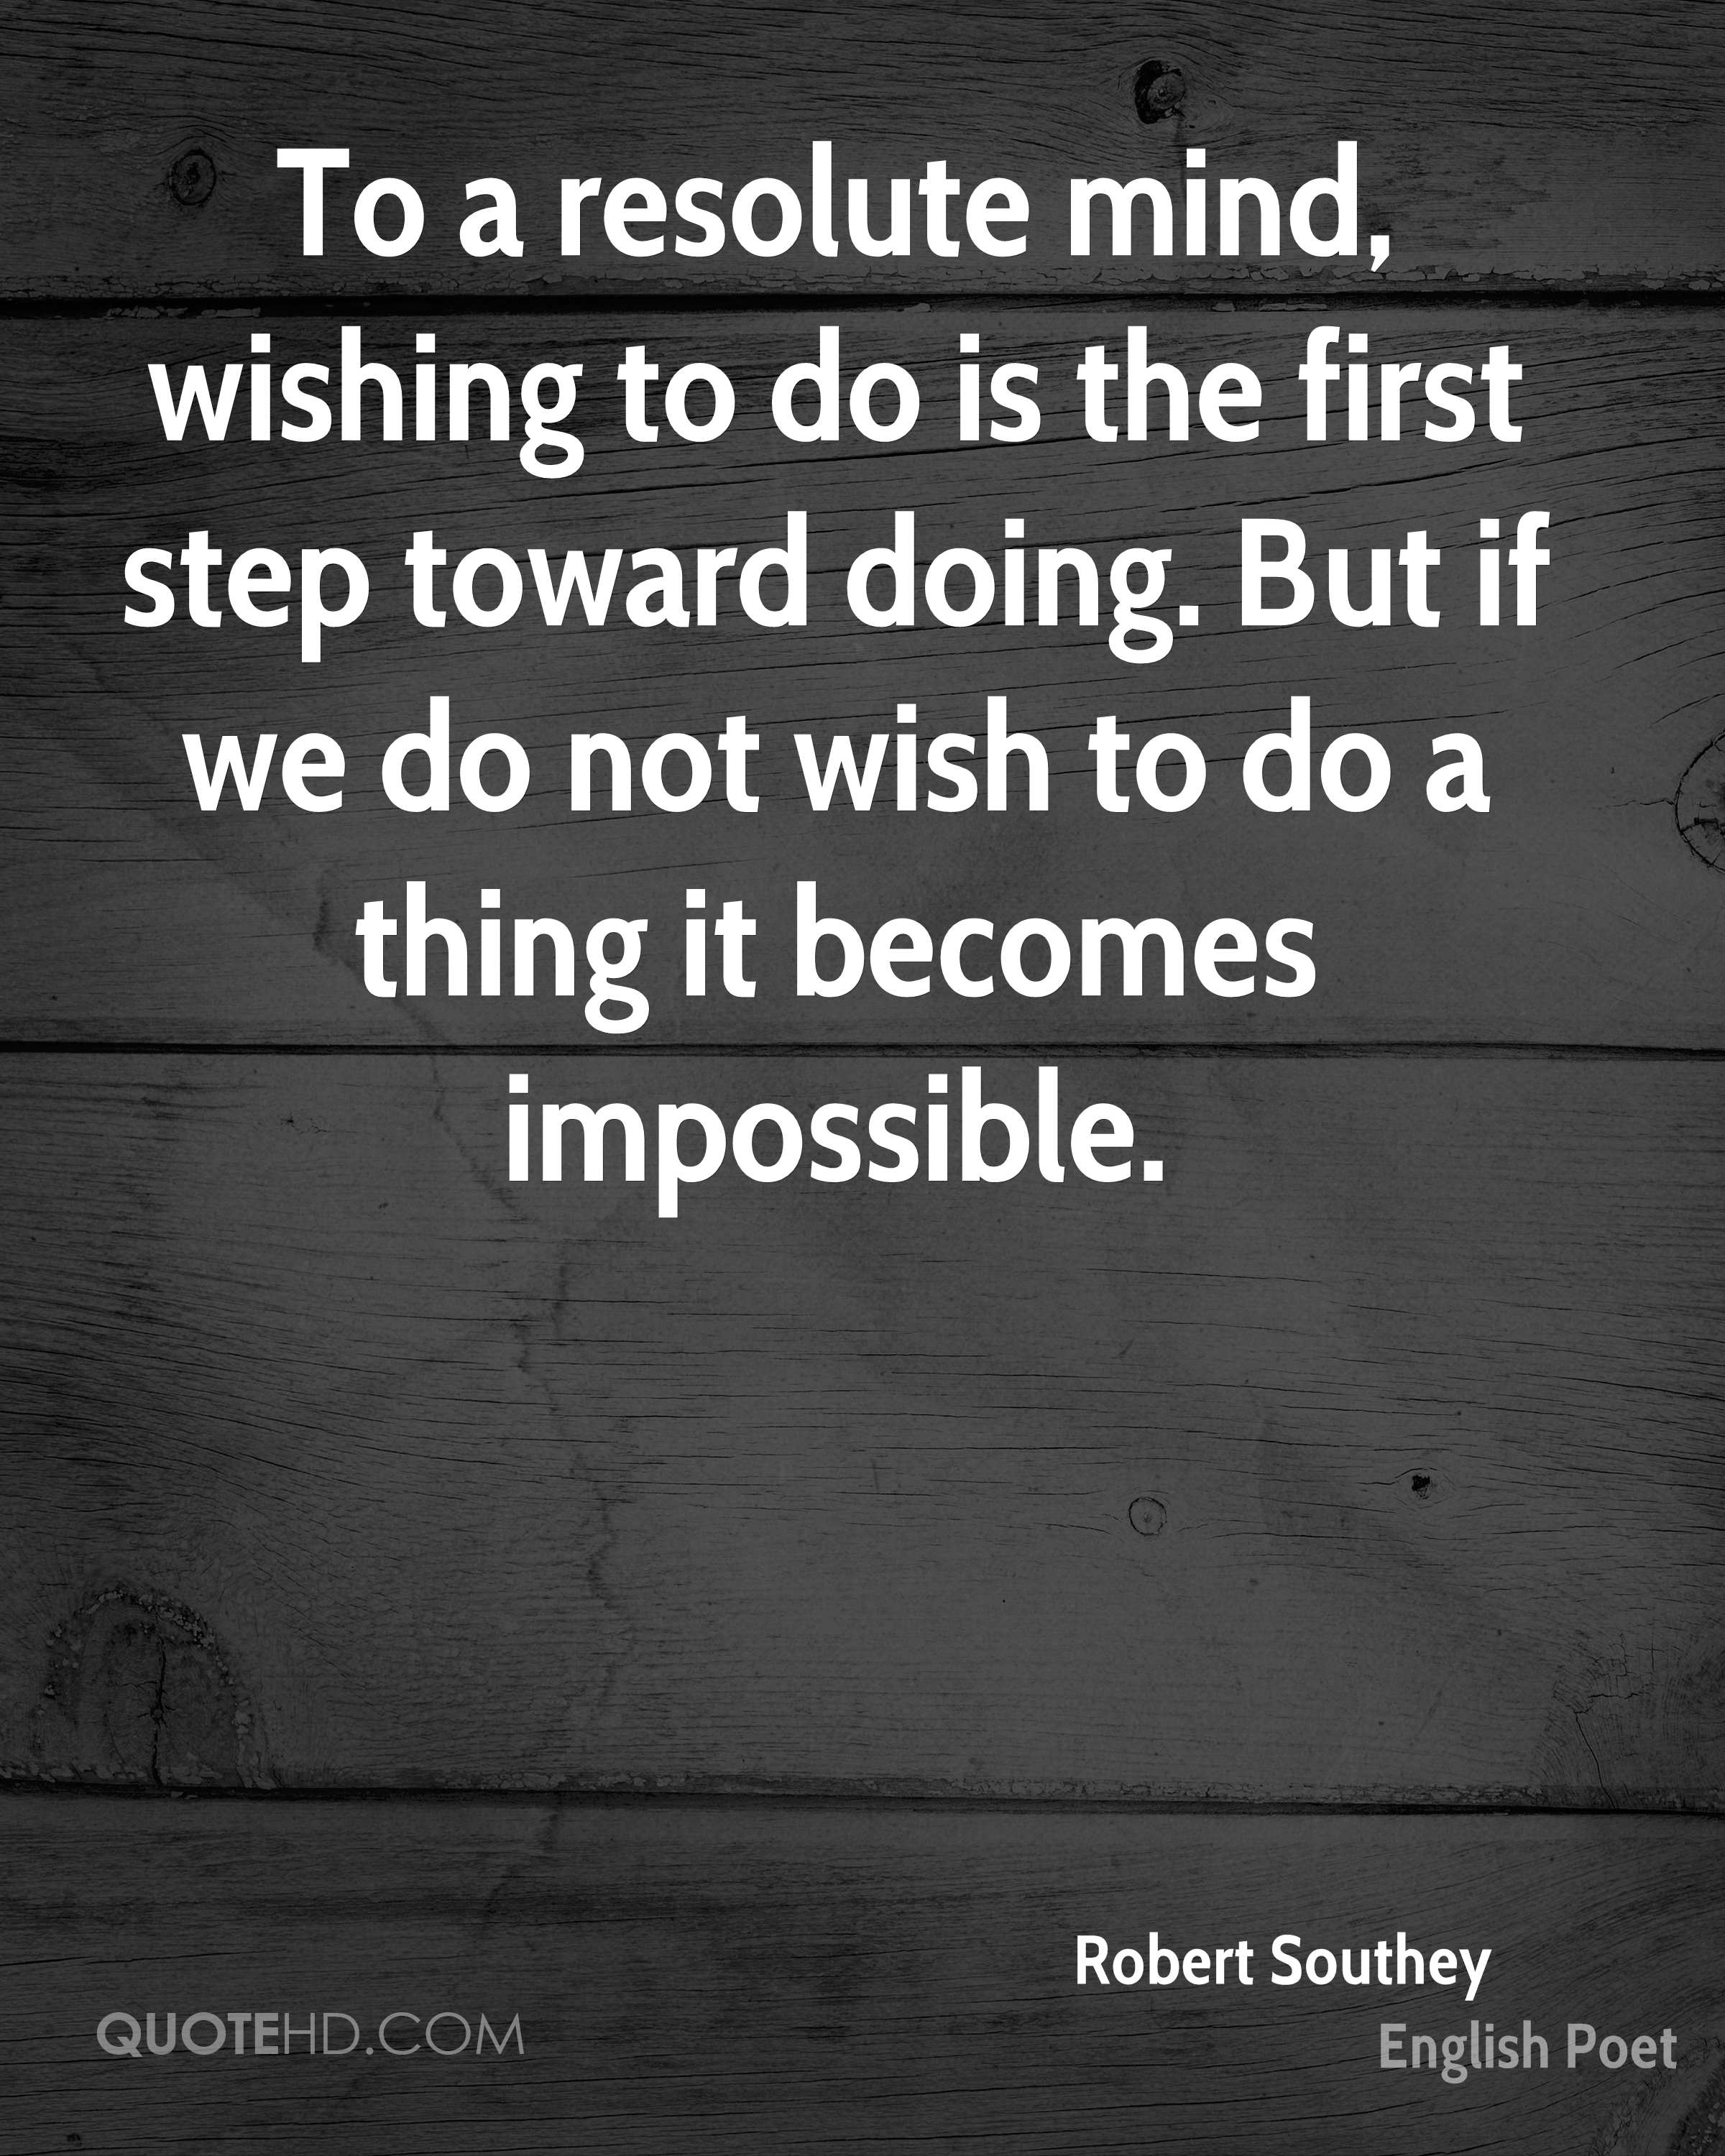 To a resolute mind, wishing to do is the first step toward doing. But if we do not wish to do a thing it becomes impossible.